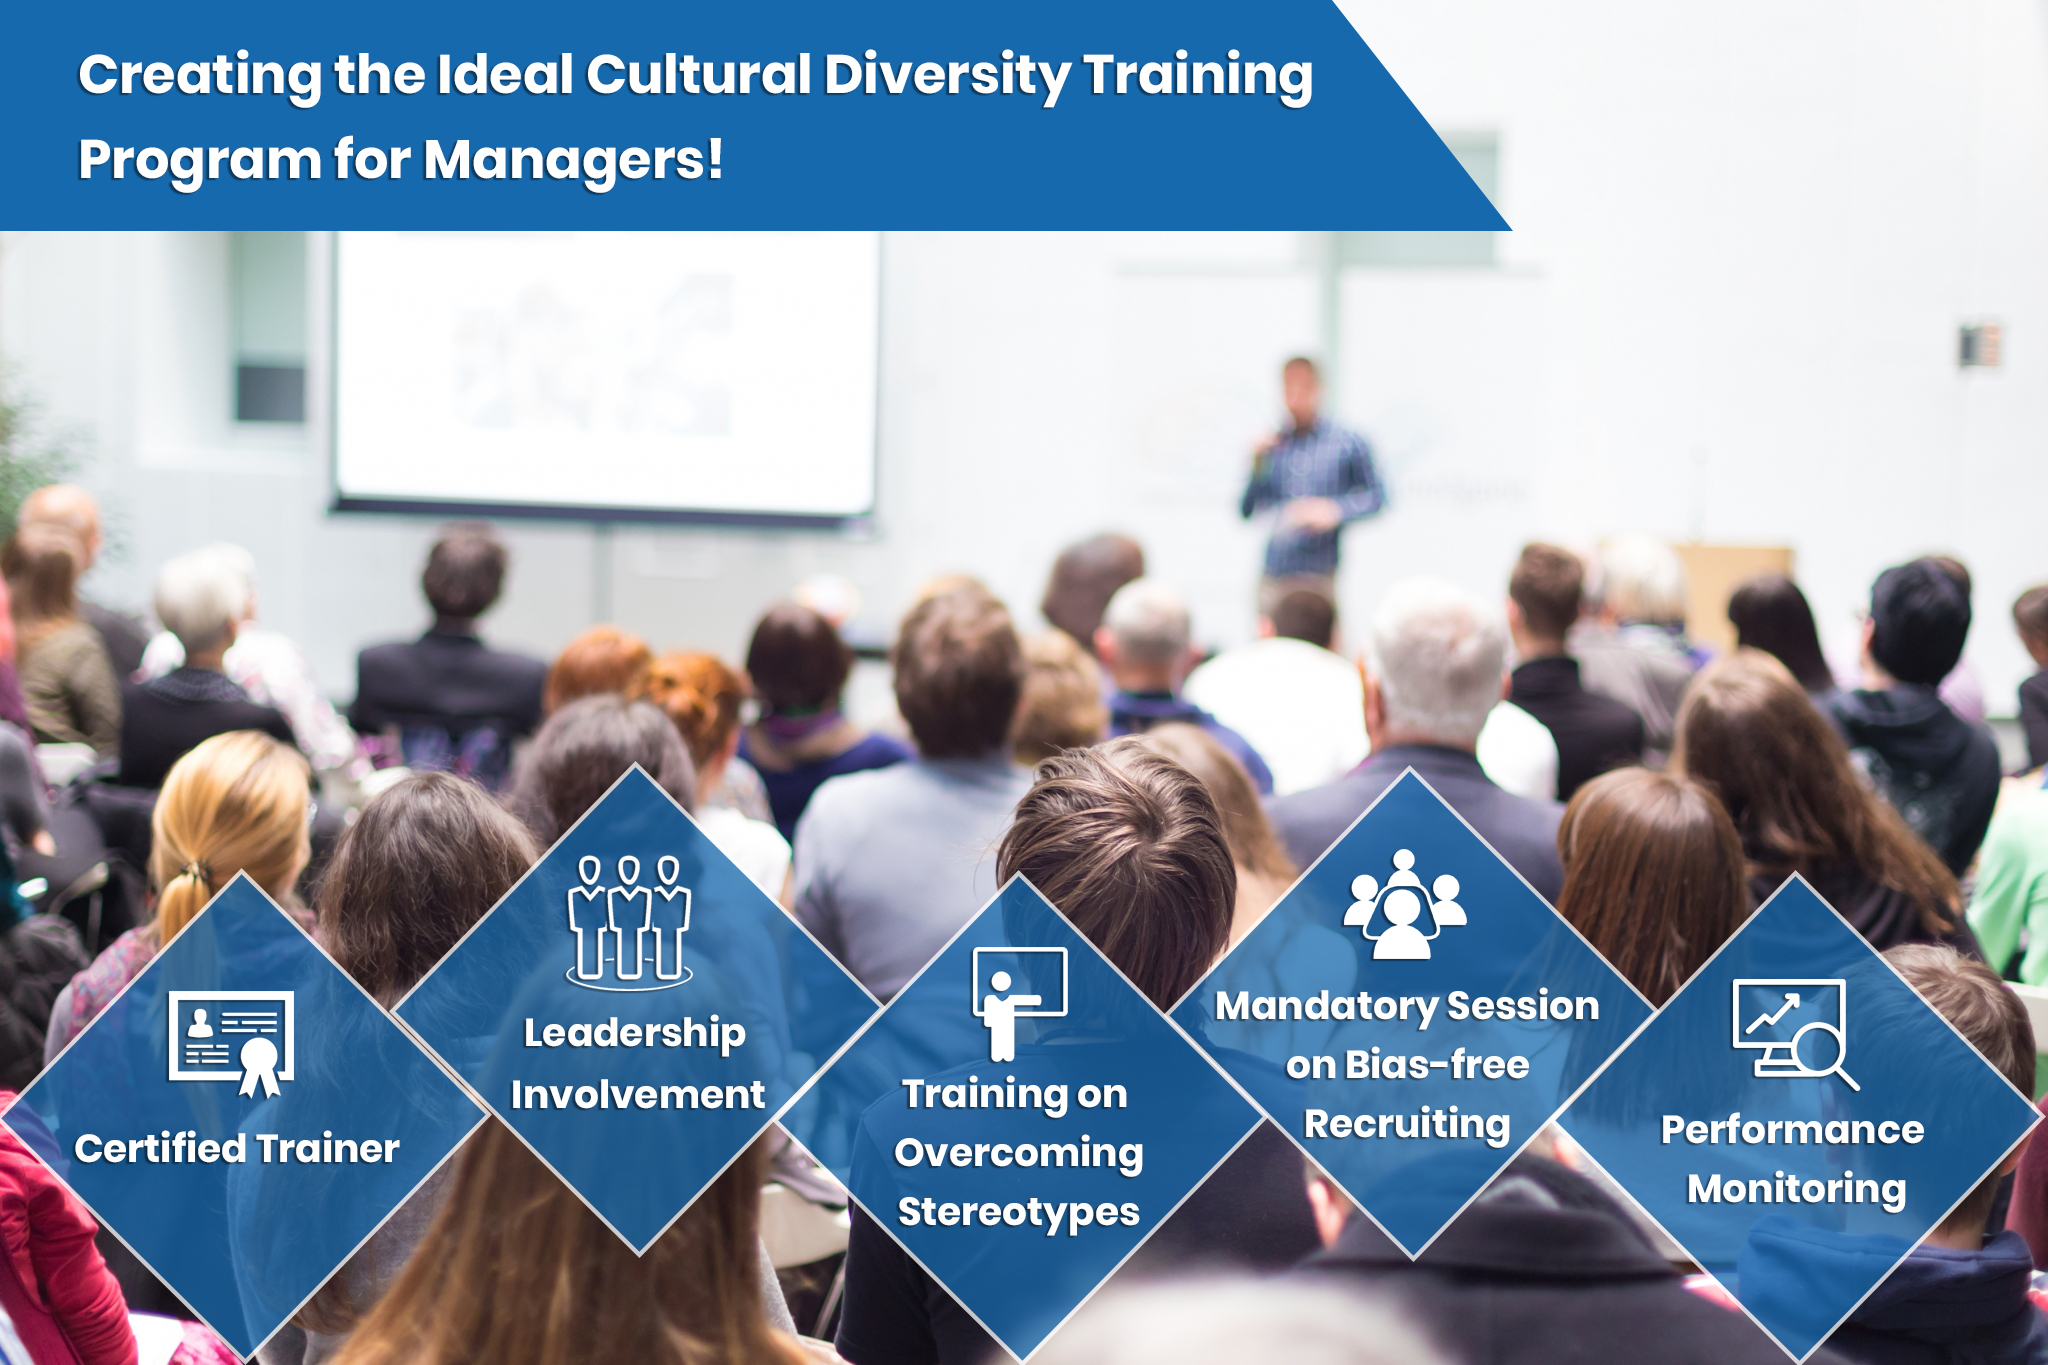 Cultural diversity training taking place